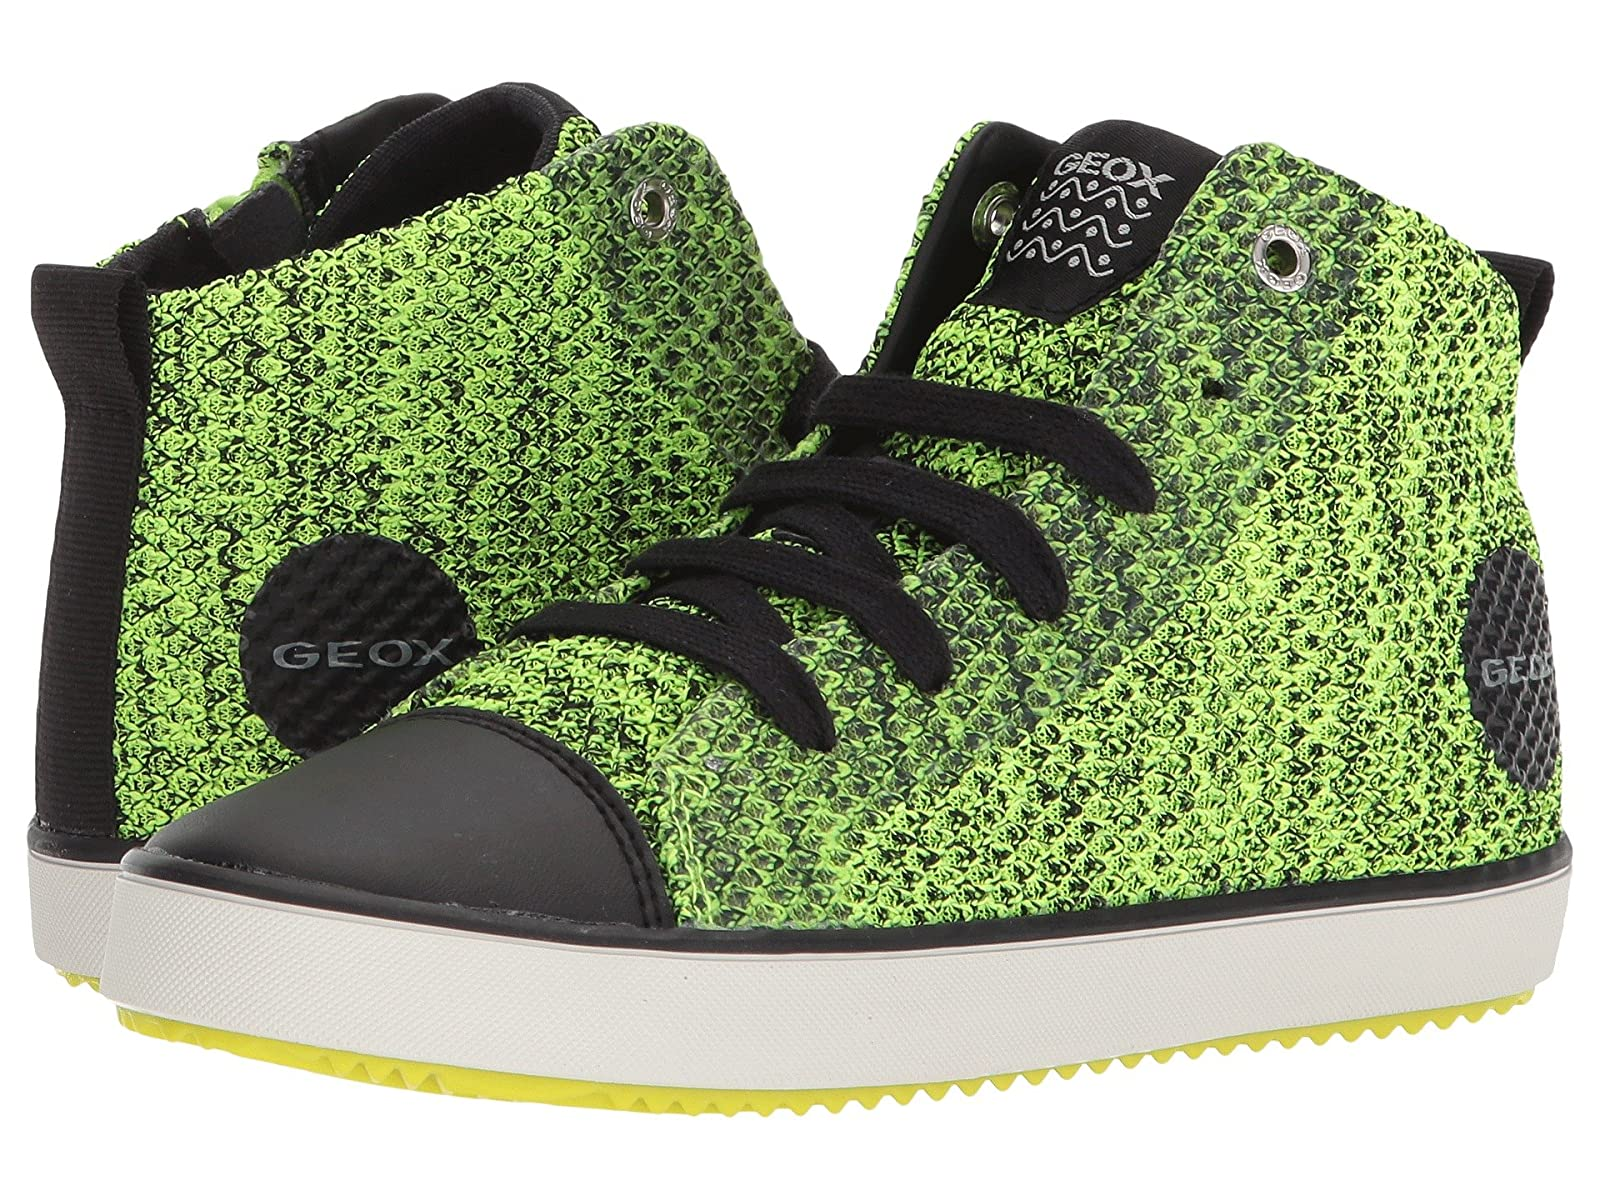 Geox Kids Alonisso 19 (Little Kid/Big Kid)Cheap and distinctive eye-catching shoes